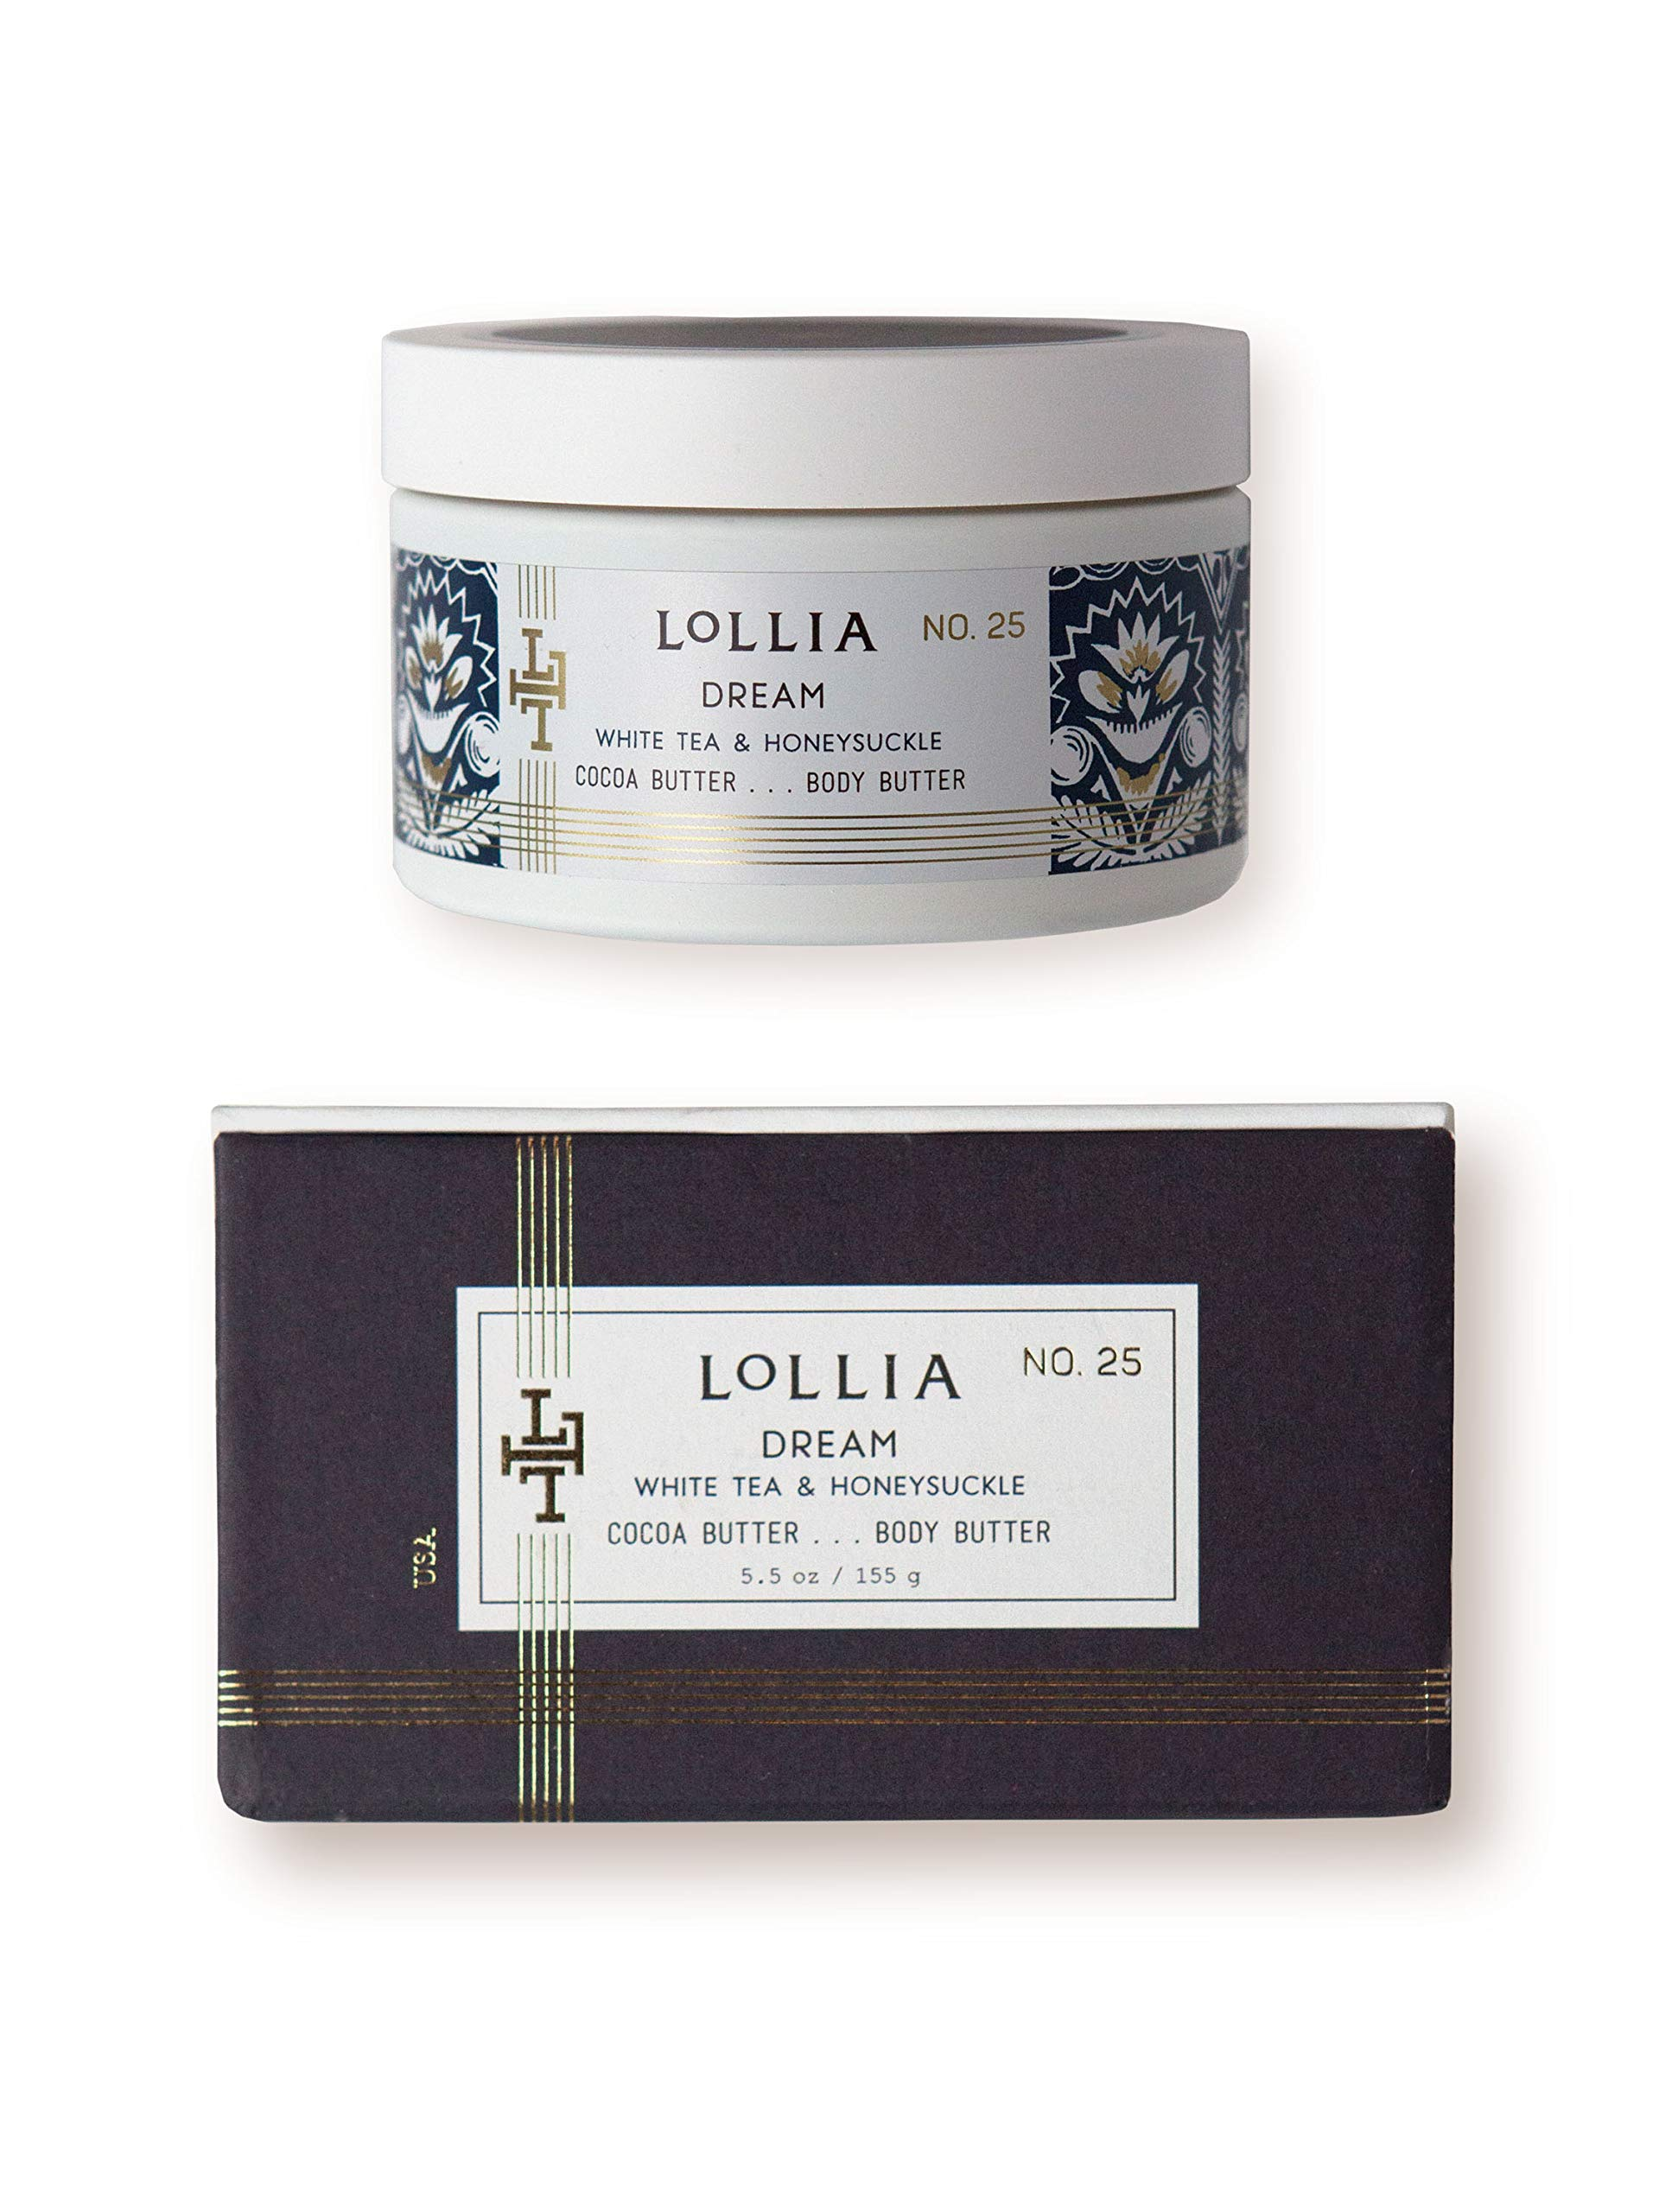 Lollia Dream Whipped Body Butter | Margot Elena's White Tea & Honeysuckle Body Cream, 5.5 oz